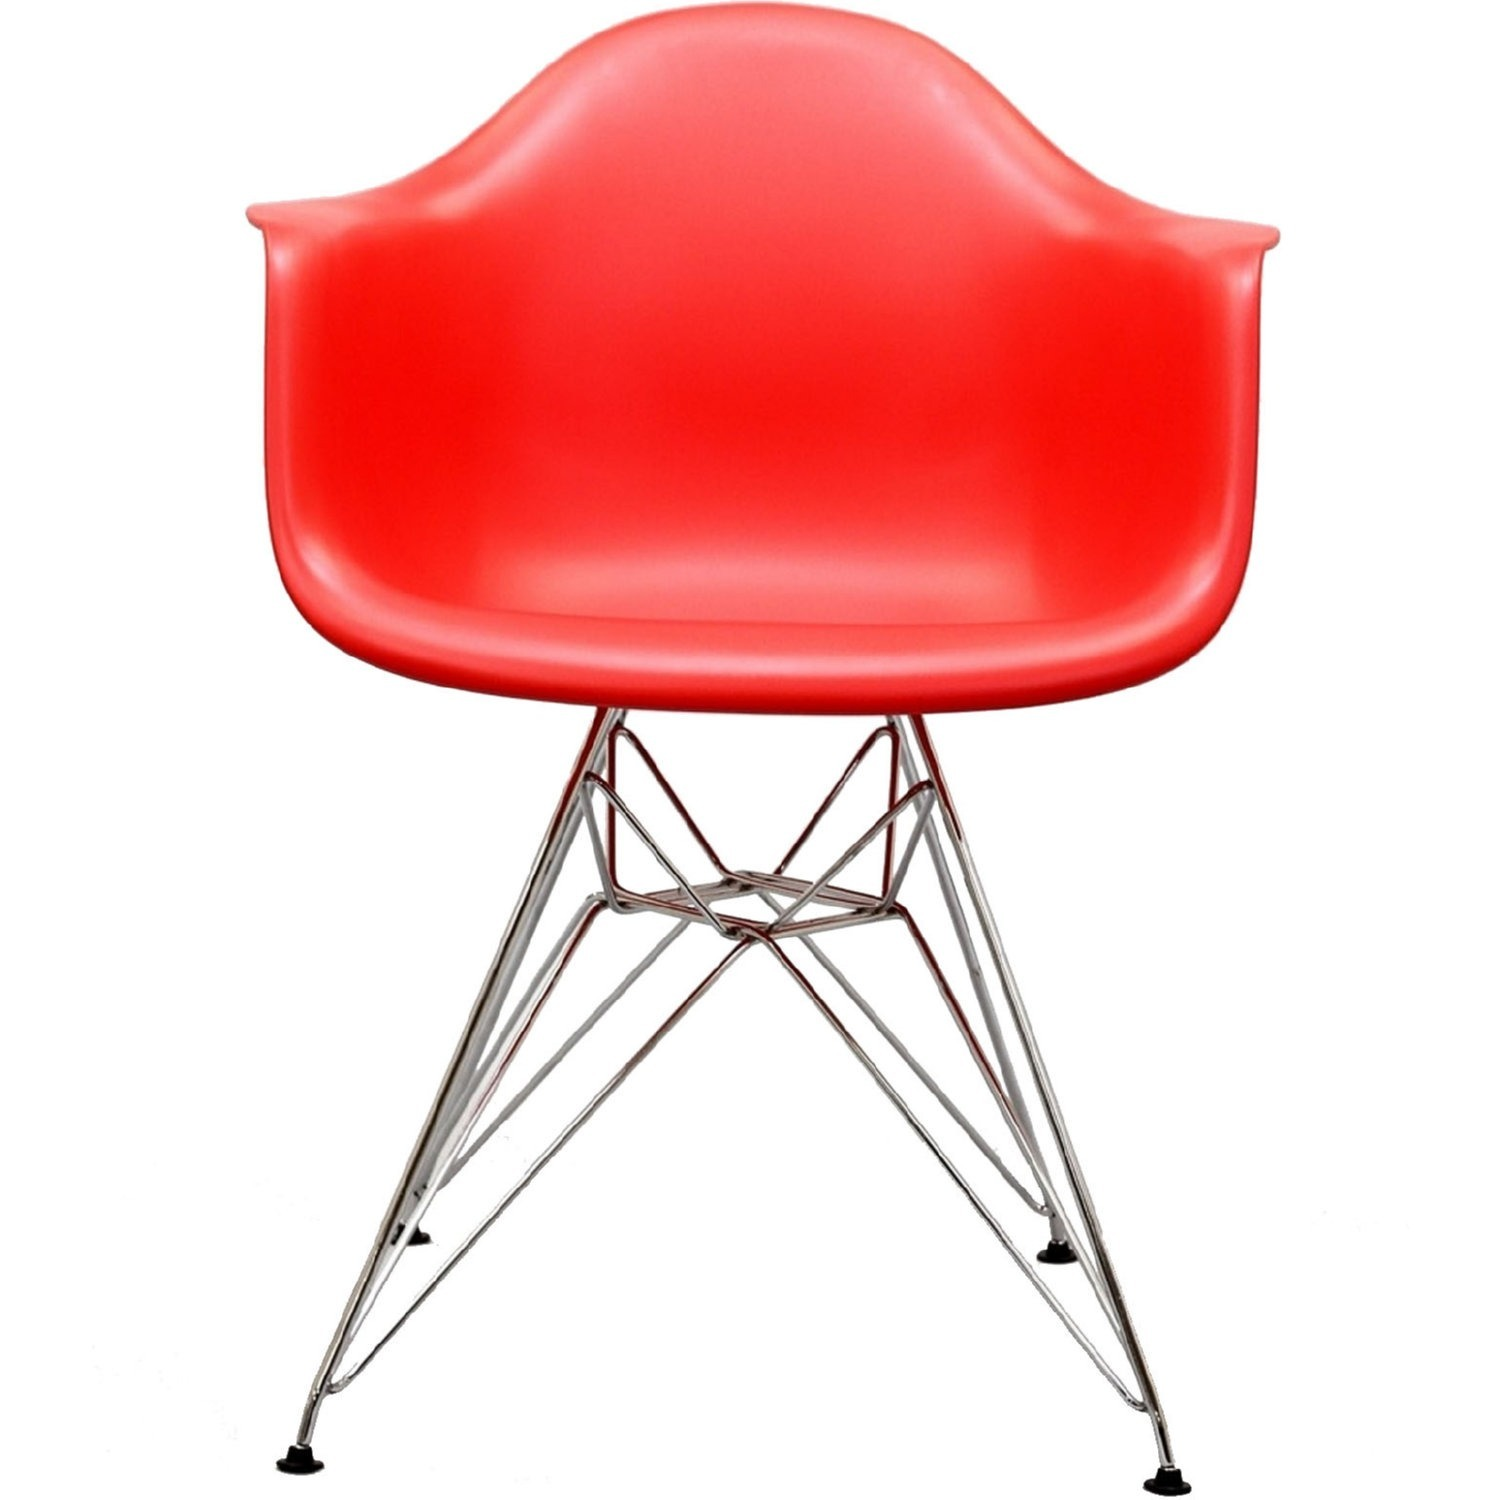 Modern Dining Chair In Red Finish W/ Steel Base - image-2